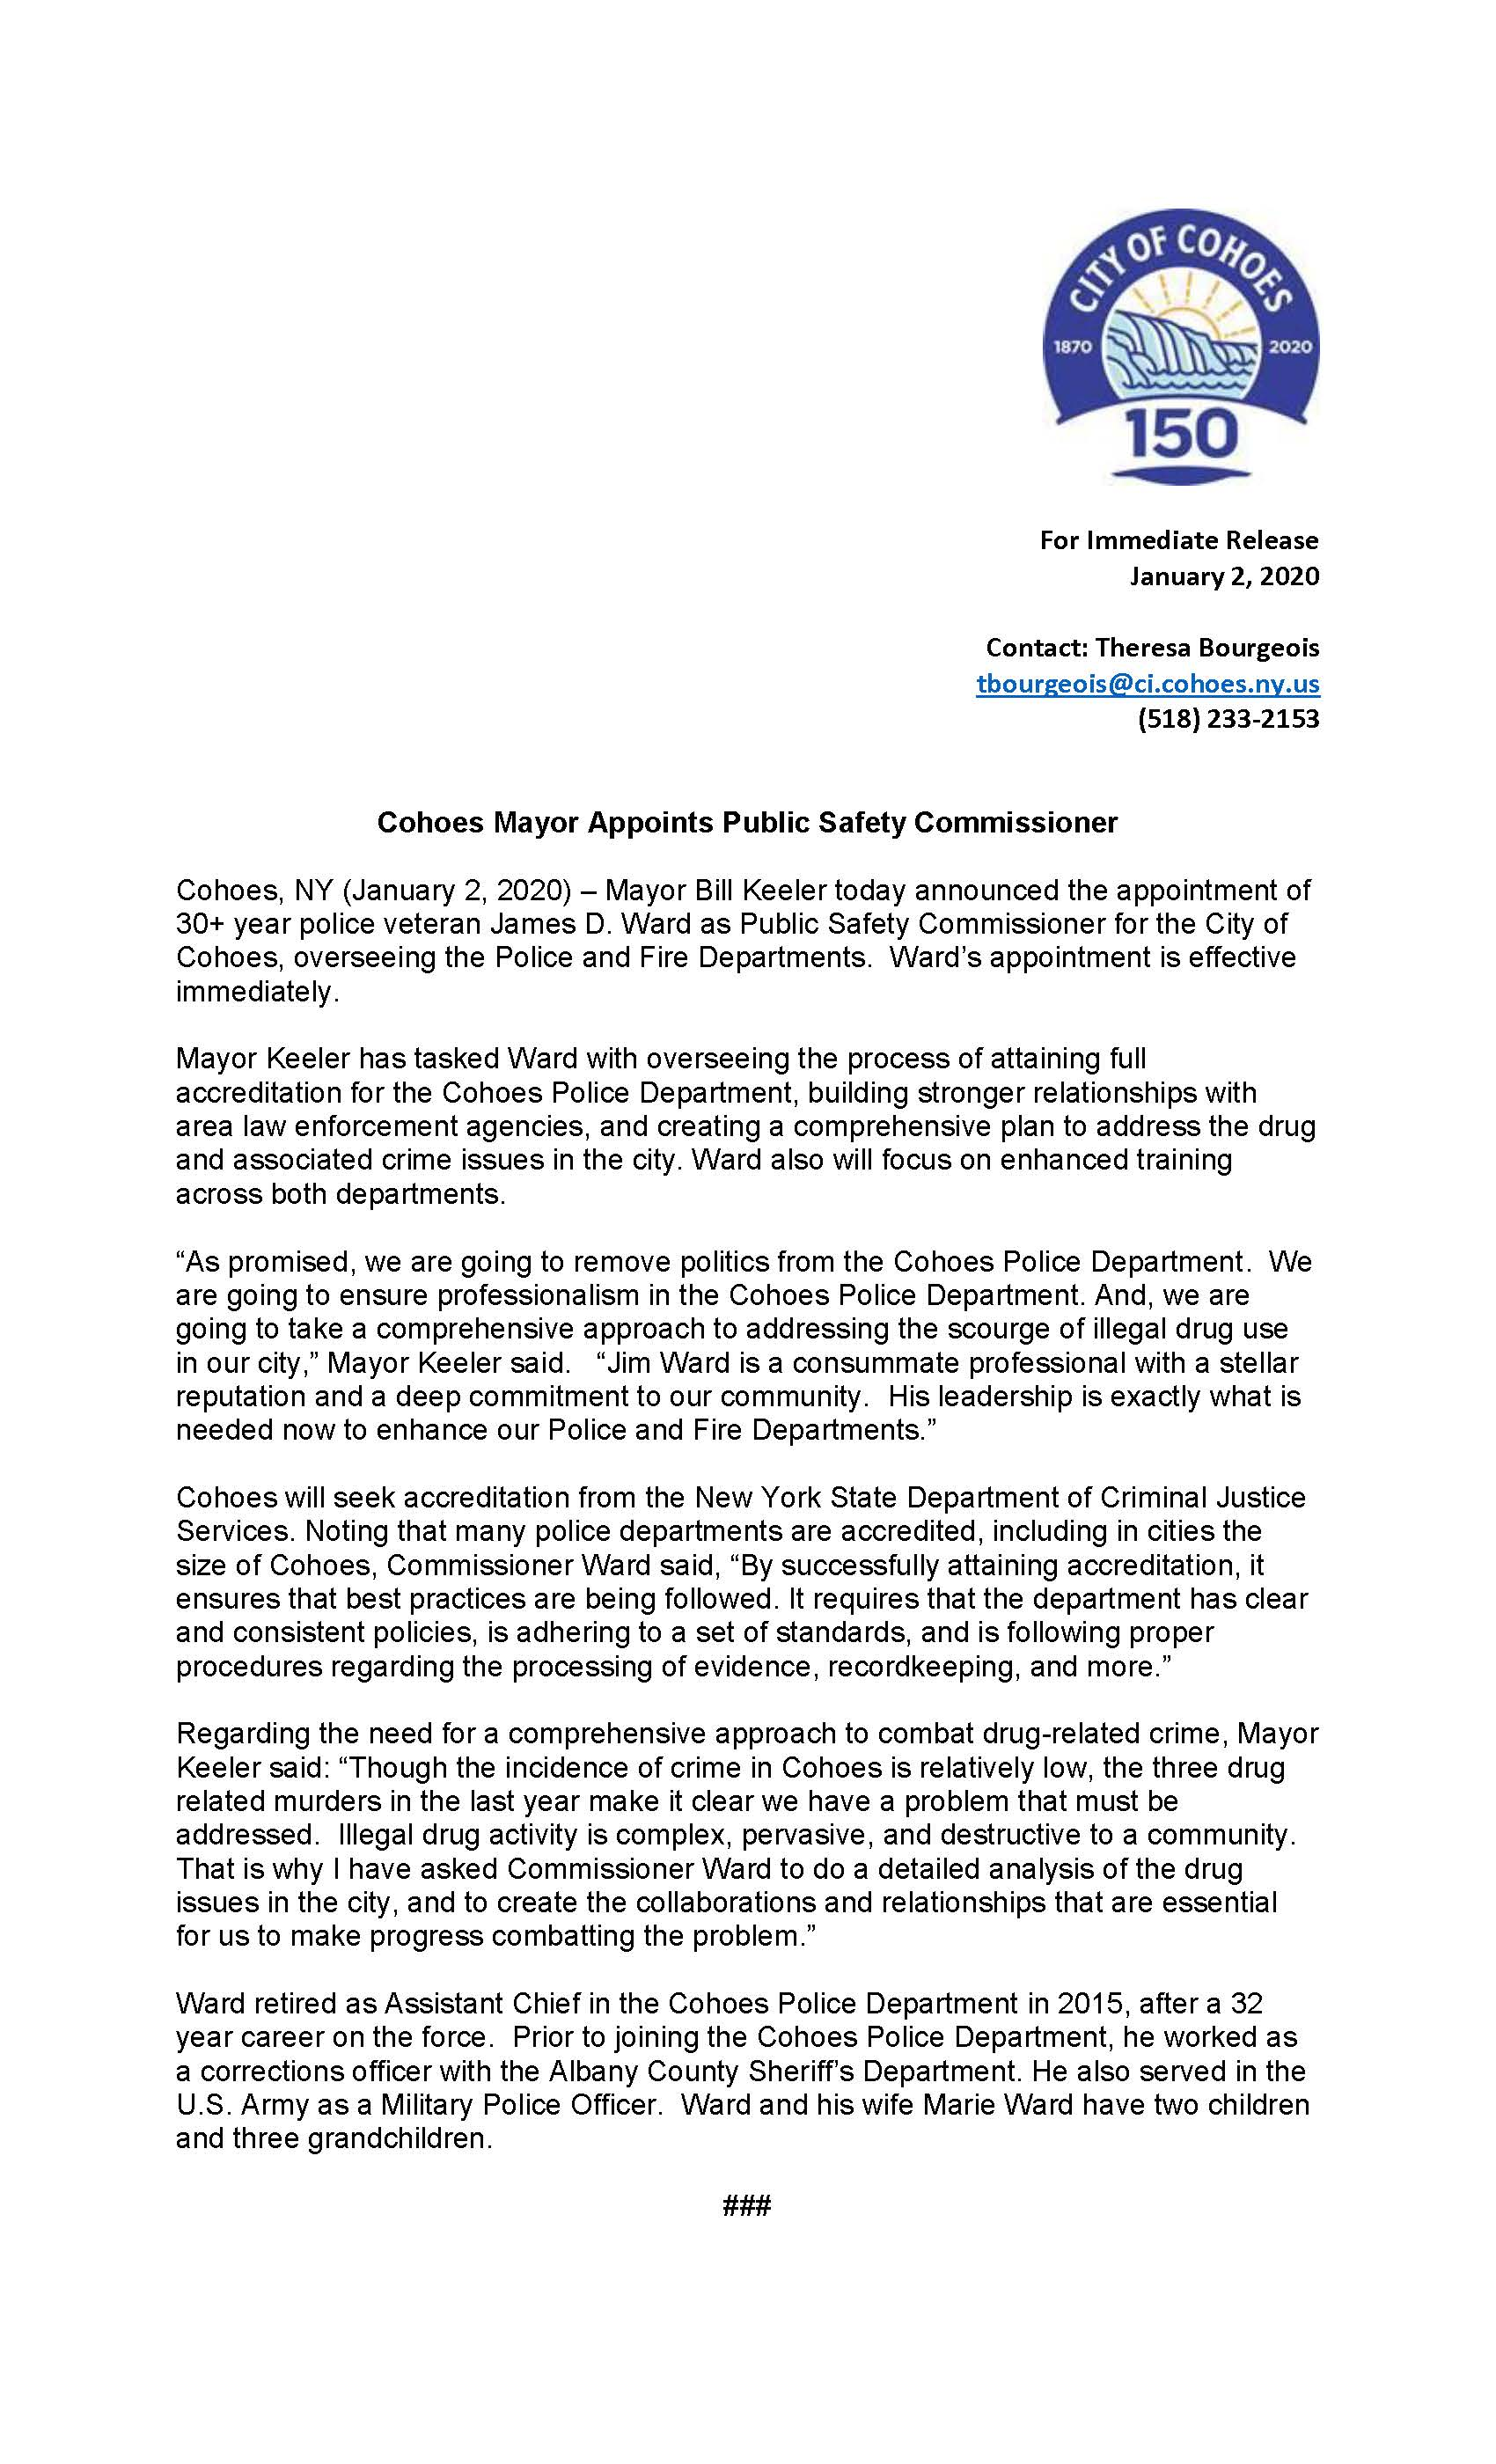 Public Safety Commissoner Press release